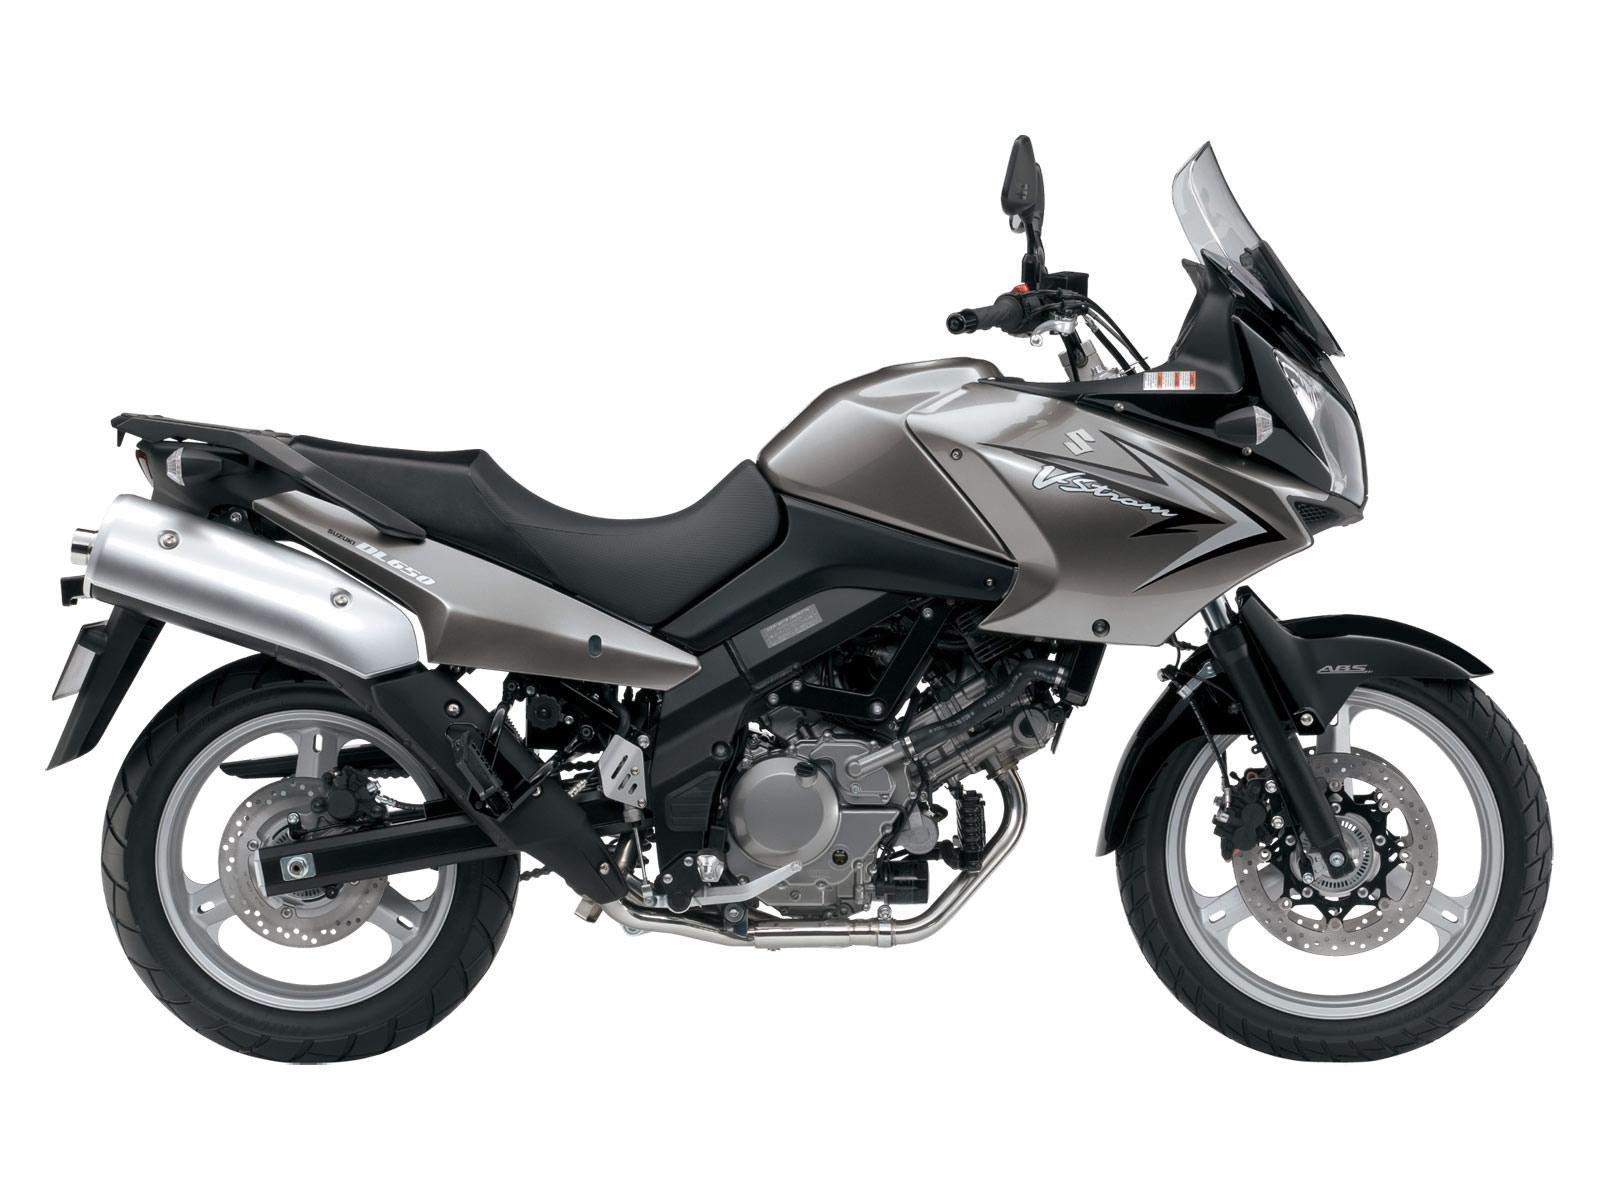 2010 suzuki v strom 650 dl650 accident lawyers info. Black Bedroom Furniture Sets. Home Design Ideas